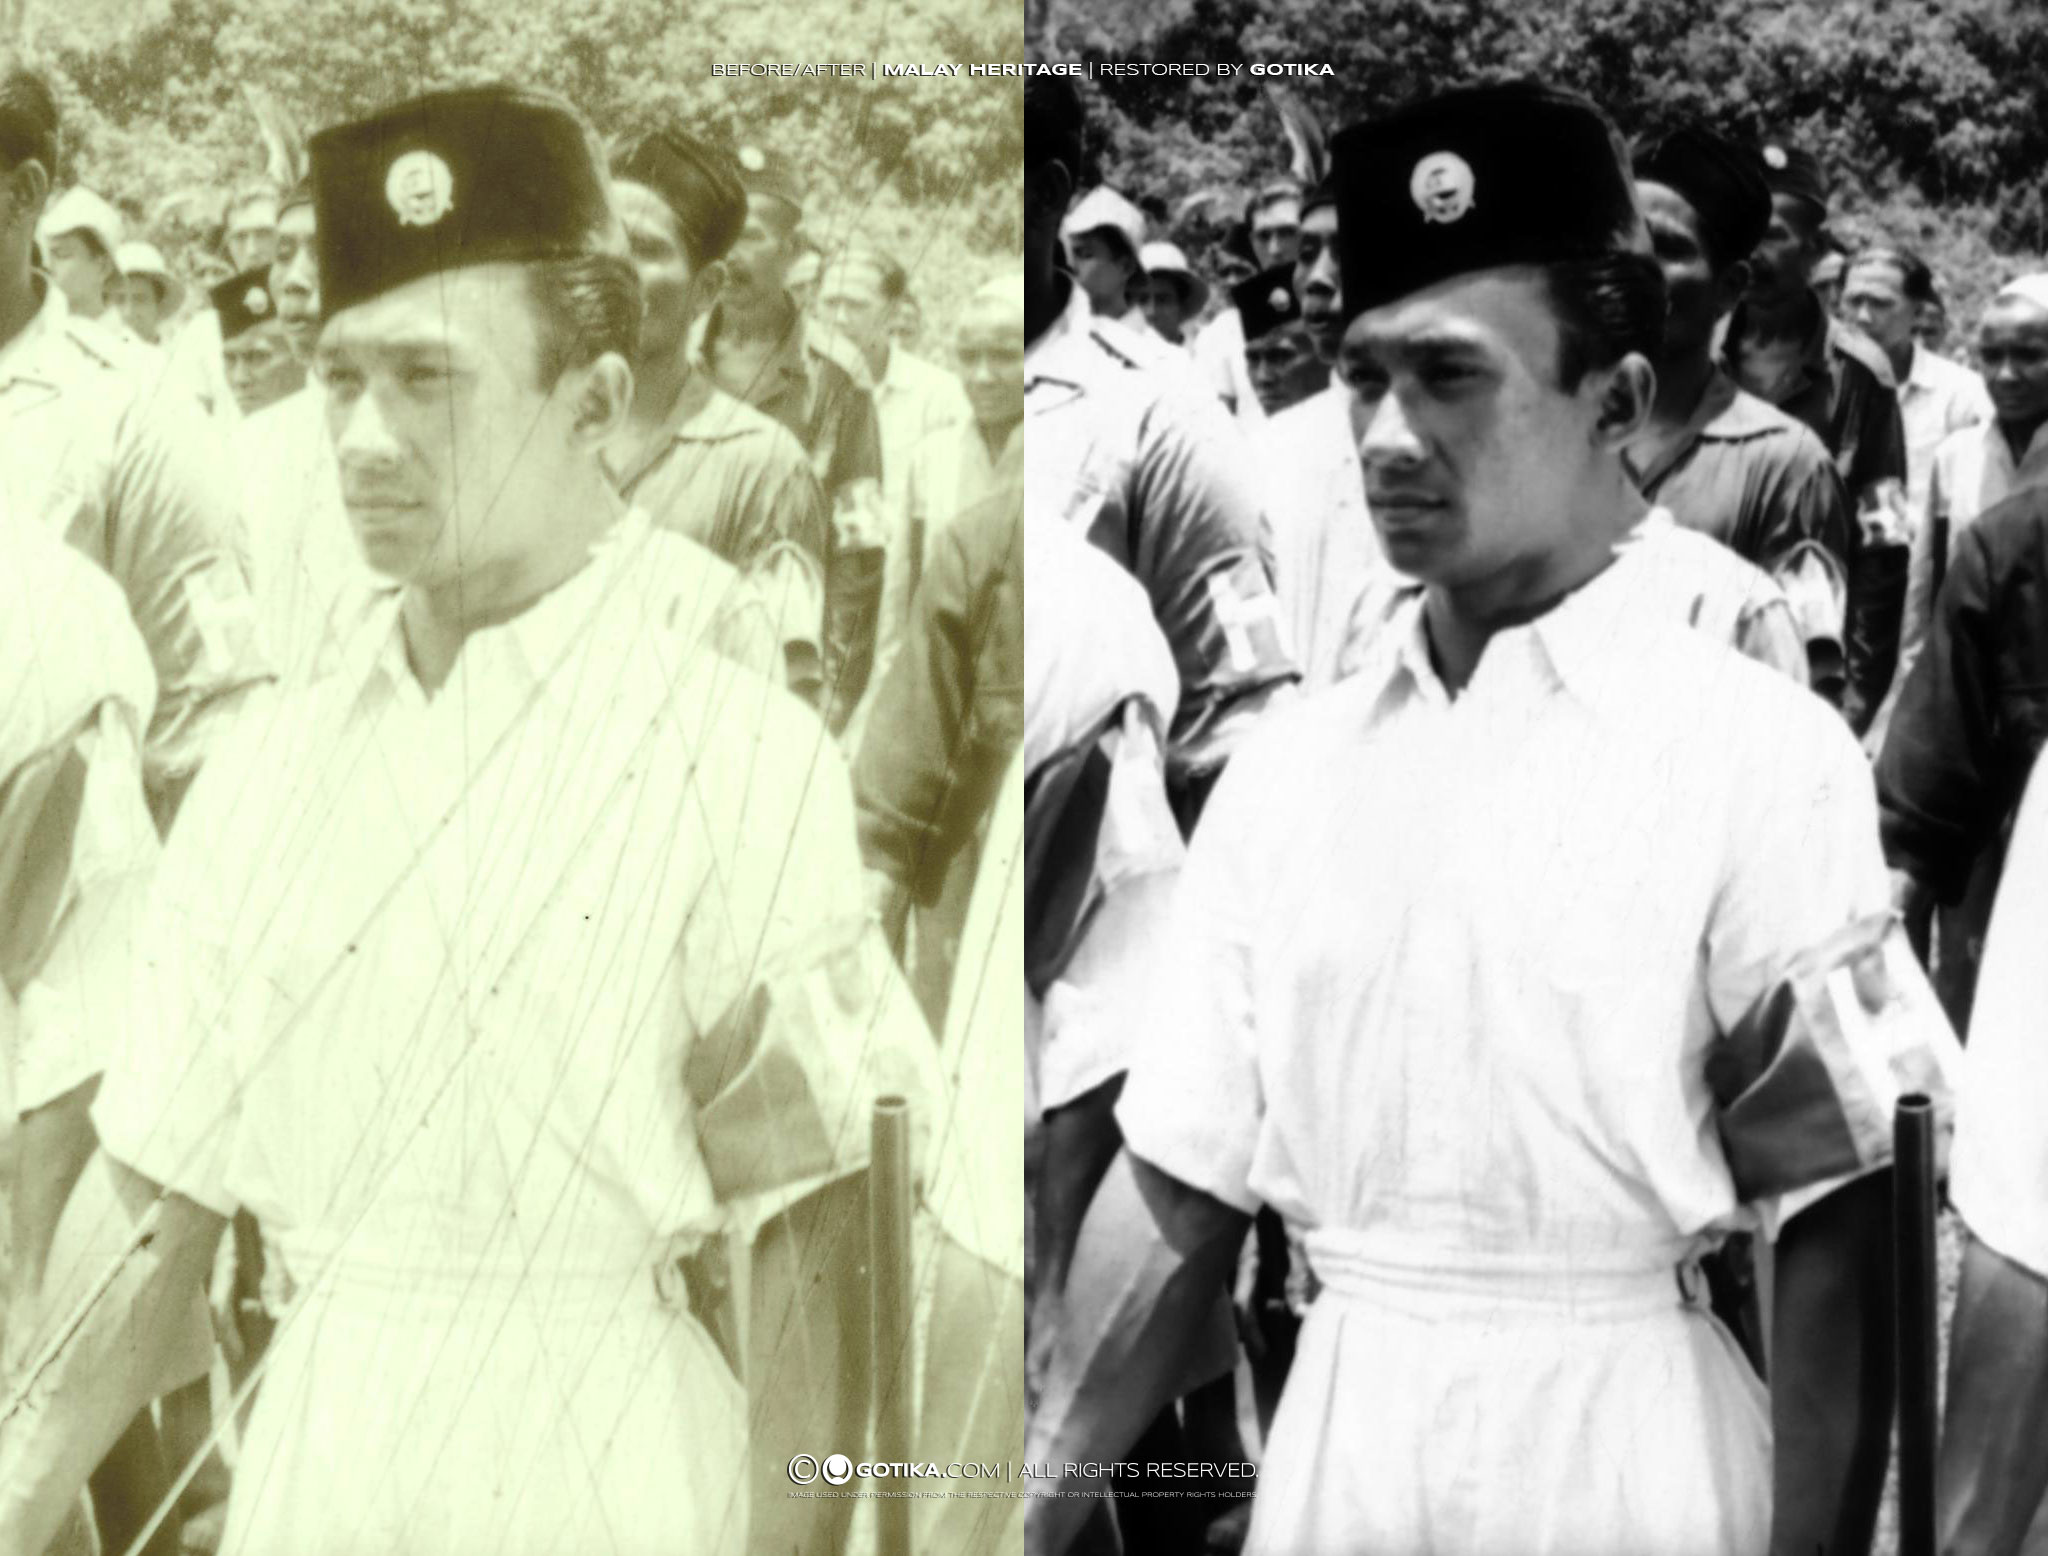 Before/After   Malay Heritage   Restored by GOTIKA